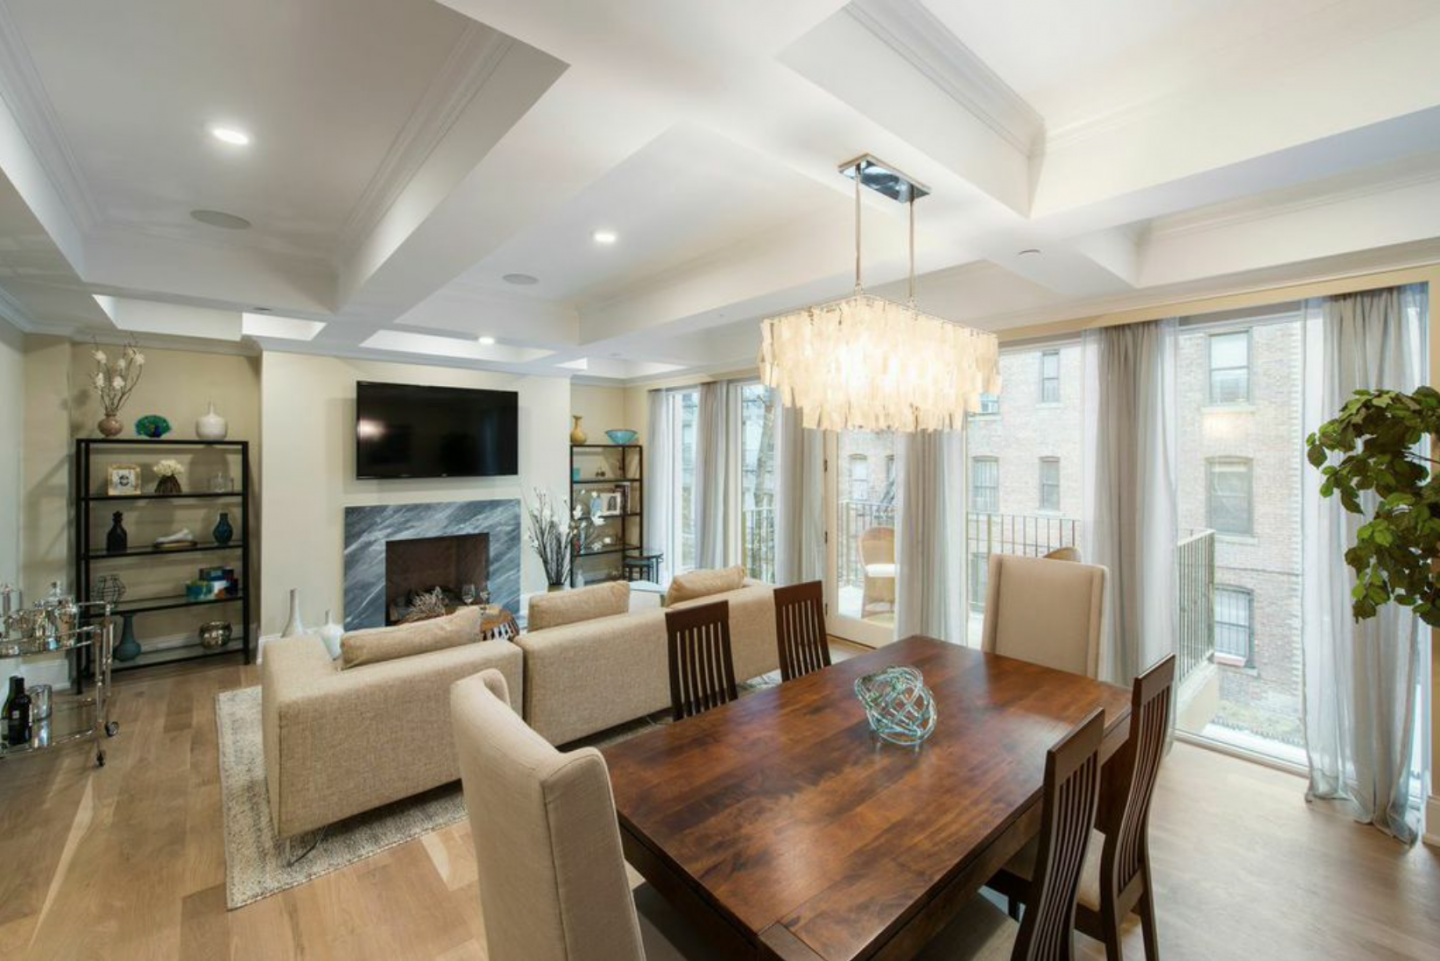 Residence Two at The Justin is a three-bedroom full-floor condo for roughly $3.3 million.